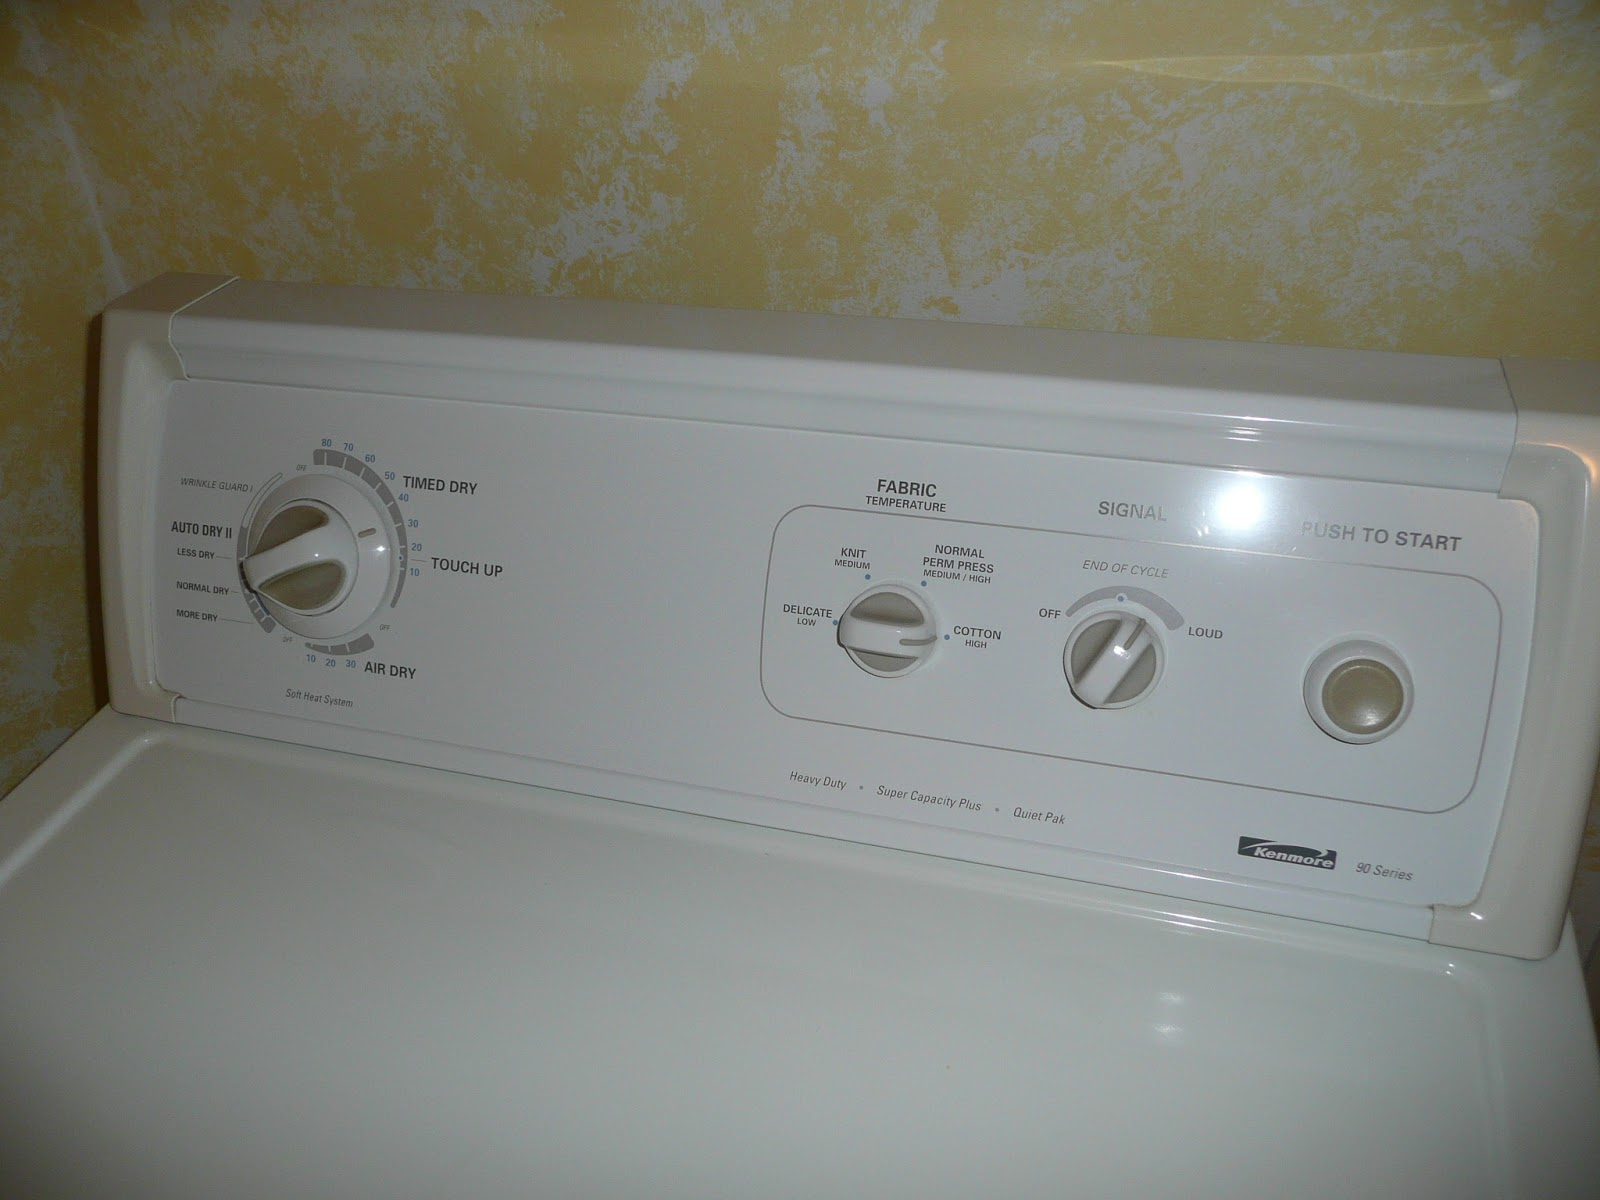 Kenmore Dryer Parts and Kenmore Dryer Repair Help from